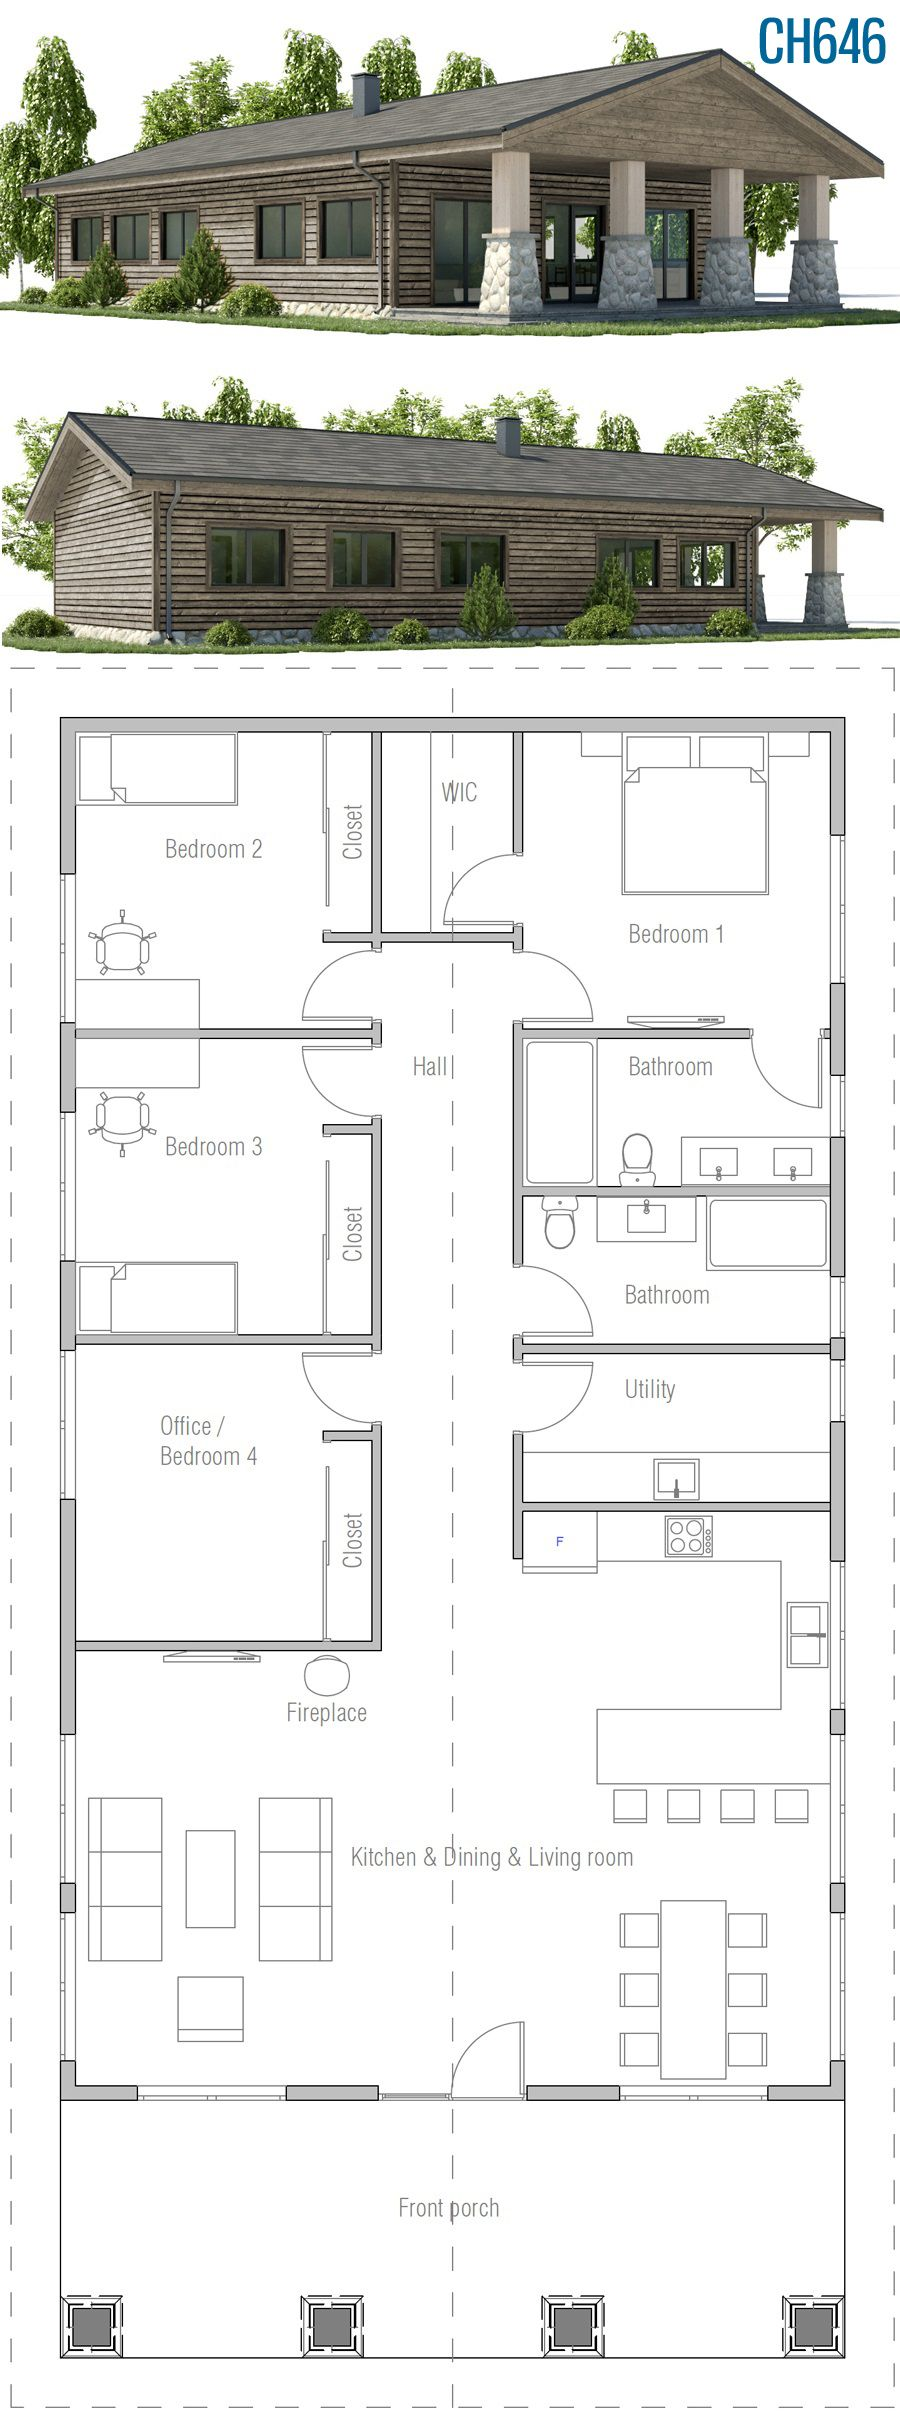 Photo of Home Plan CH646